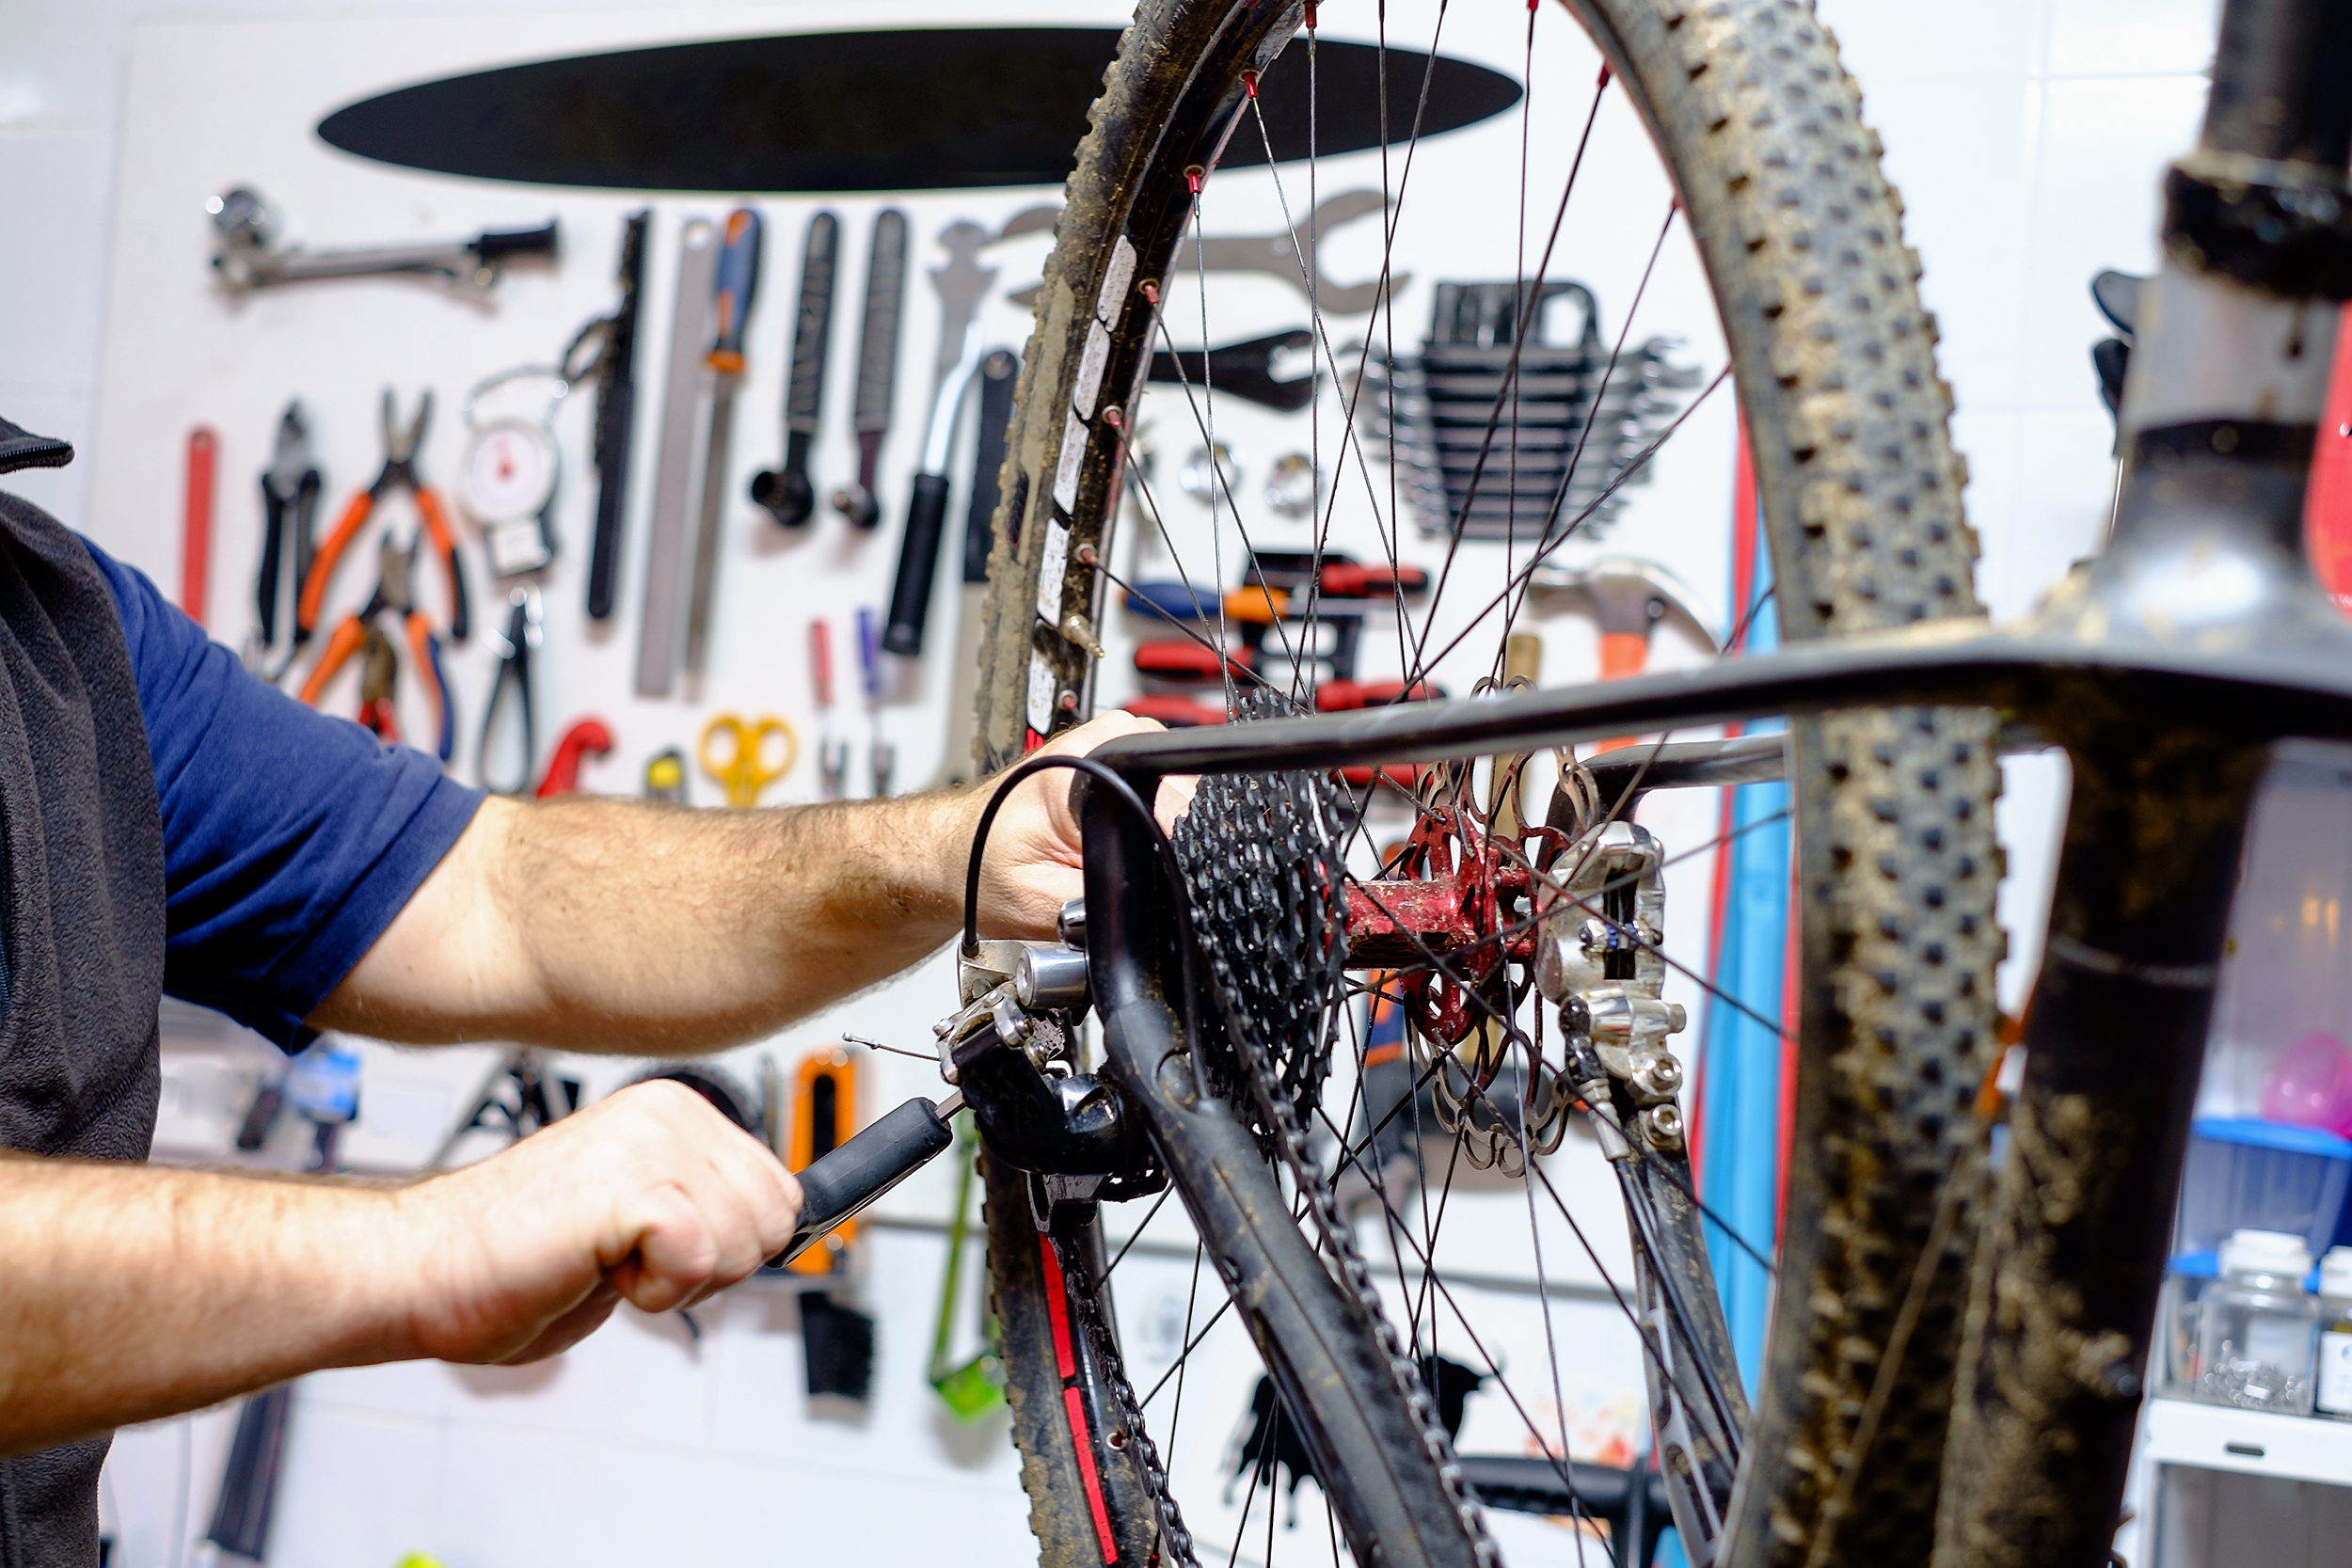 Bicycle Service and Repairs